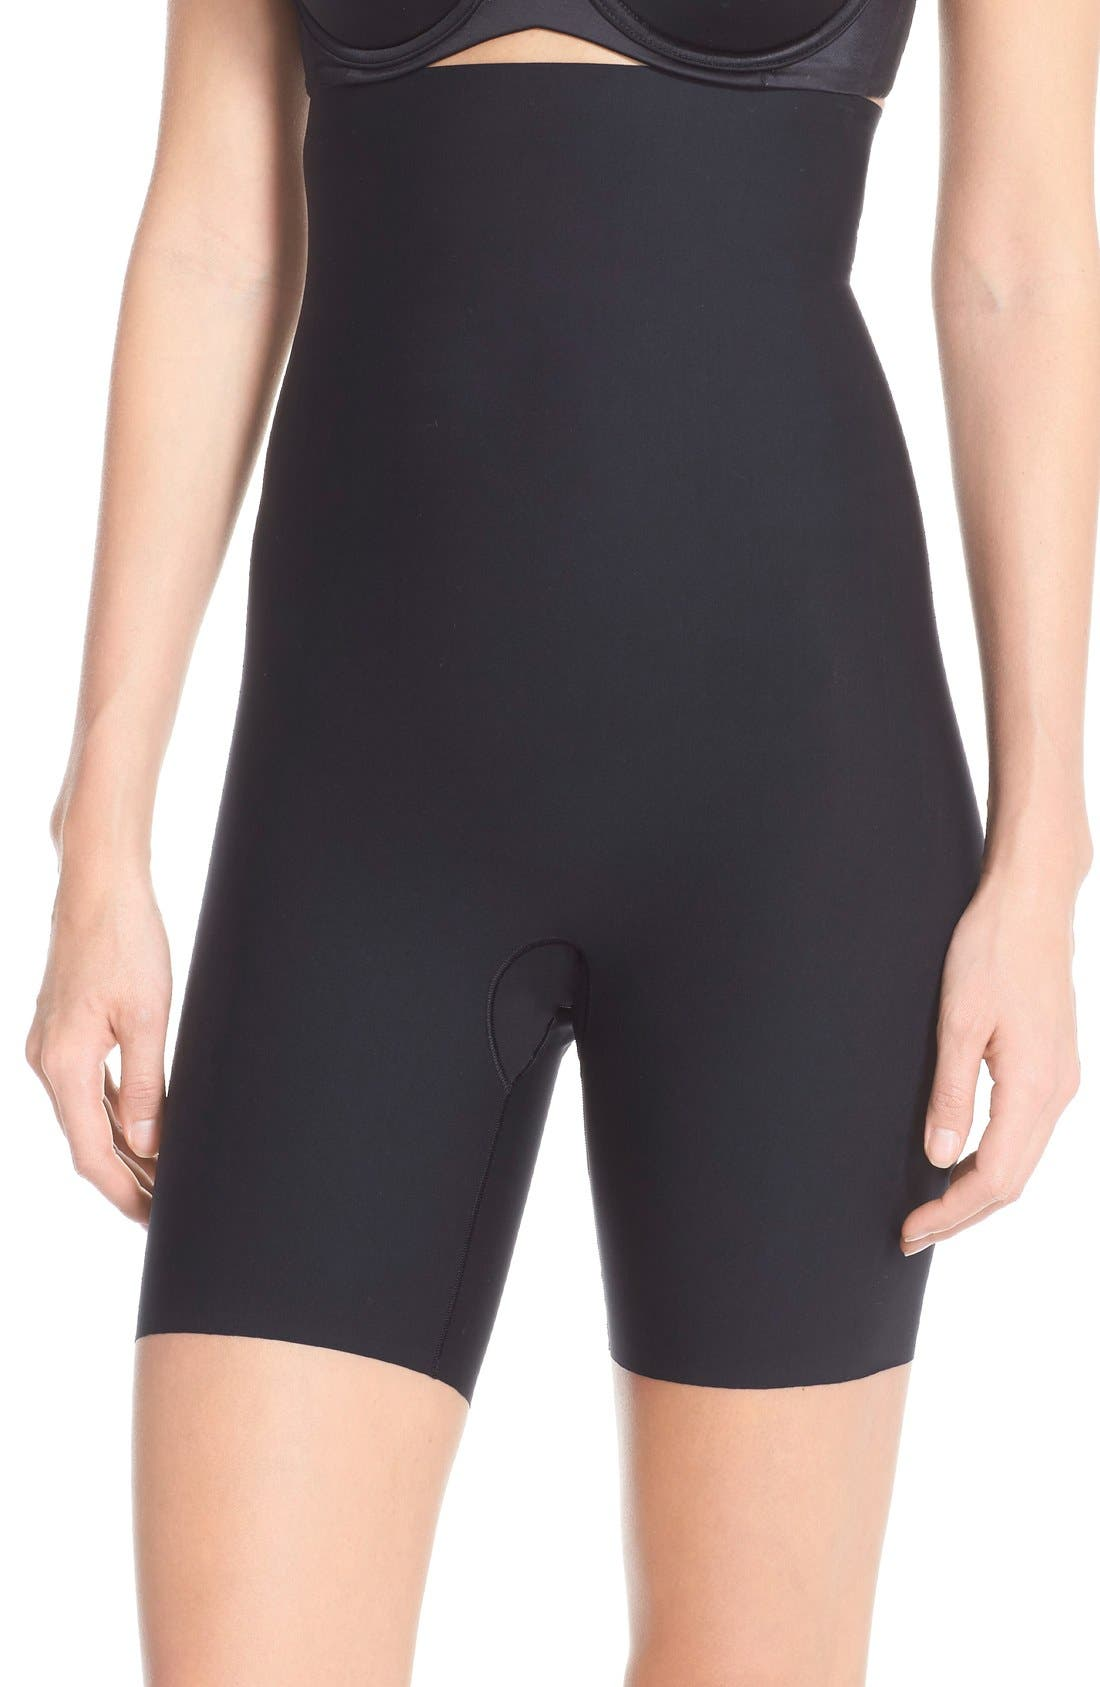 Thinstincts Mid Thigh Shorts,                             Main thumbnail 1, color,                             Very Black